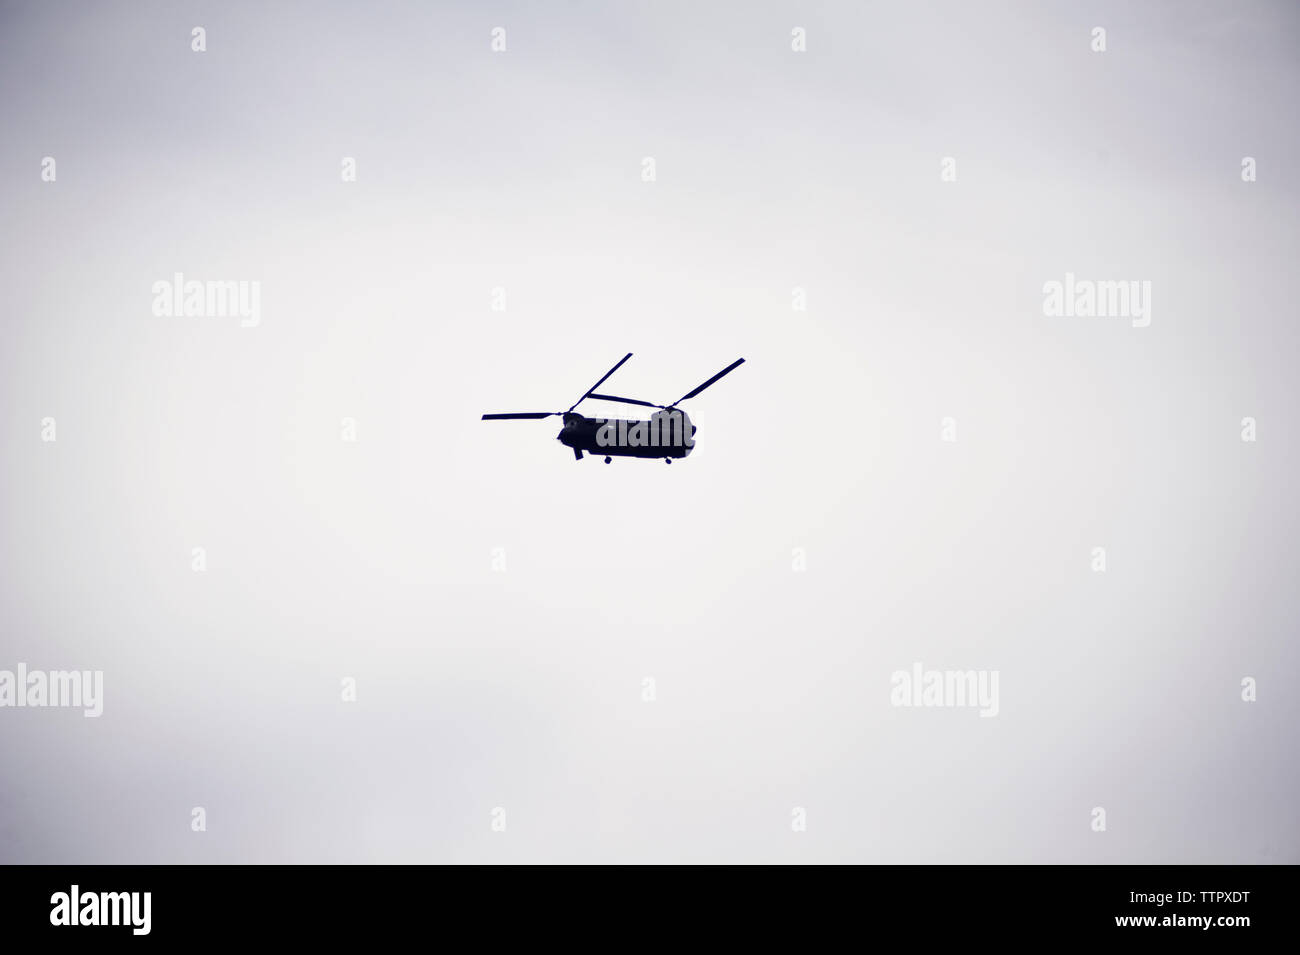 Low angle view of military helicopter flying in clear sky - Stock Image